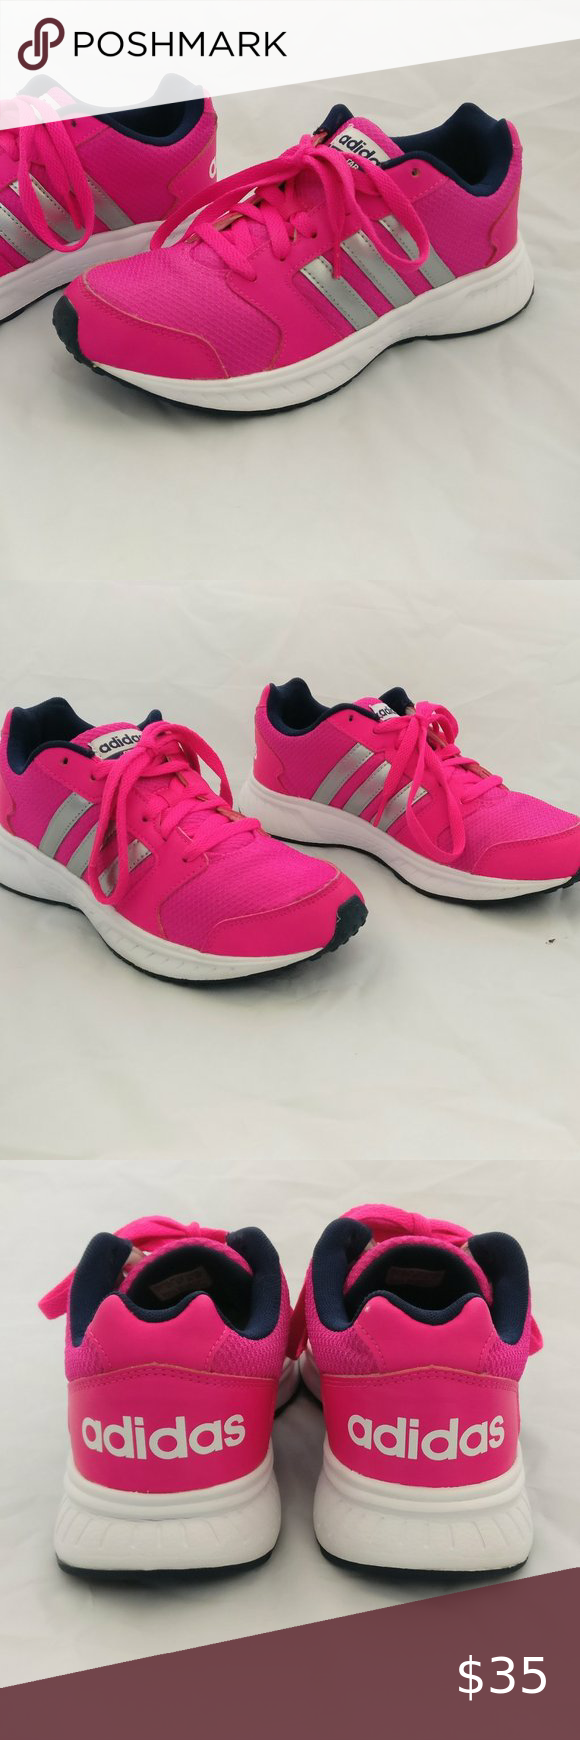 Used Size 7 Adidas Neo Star Pink